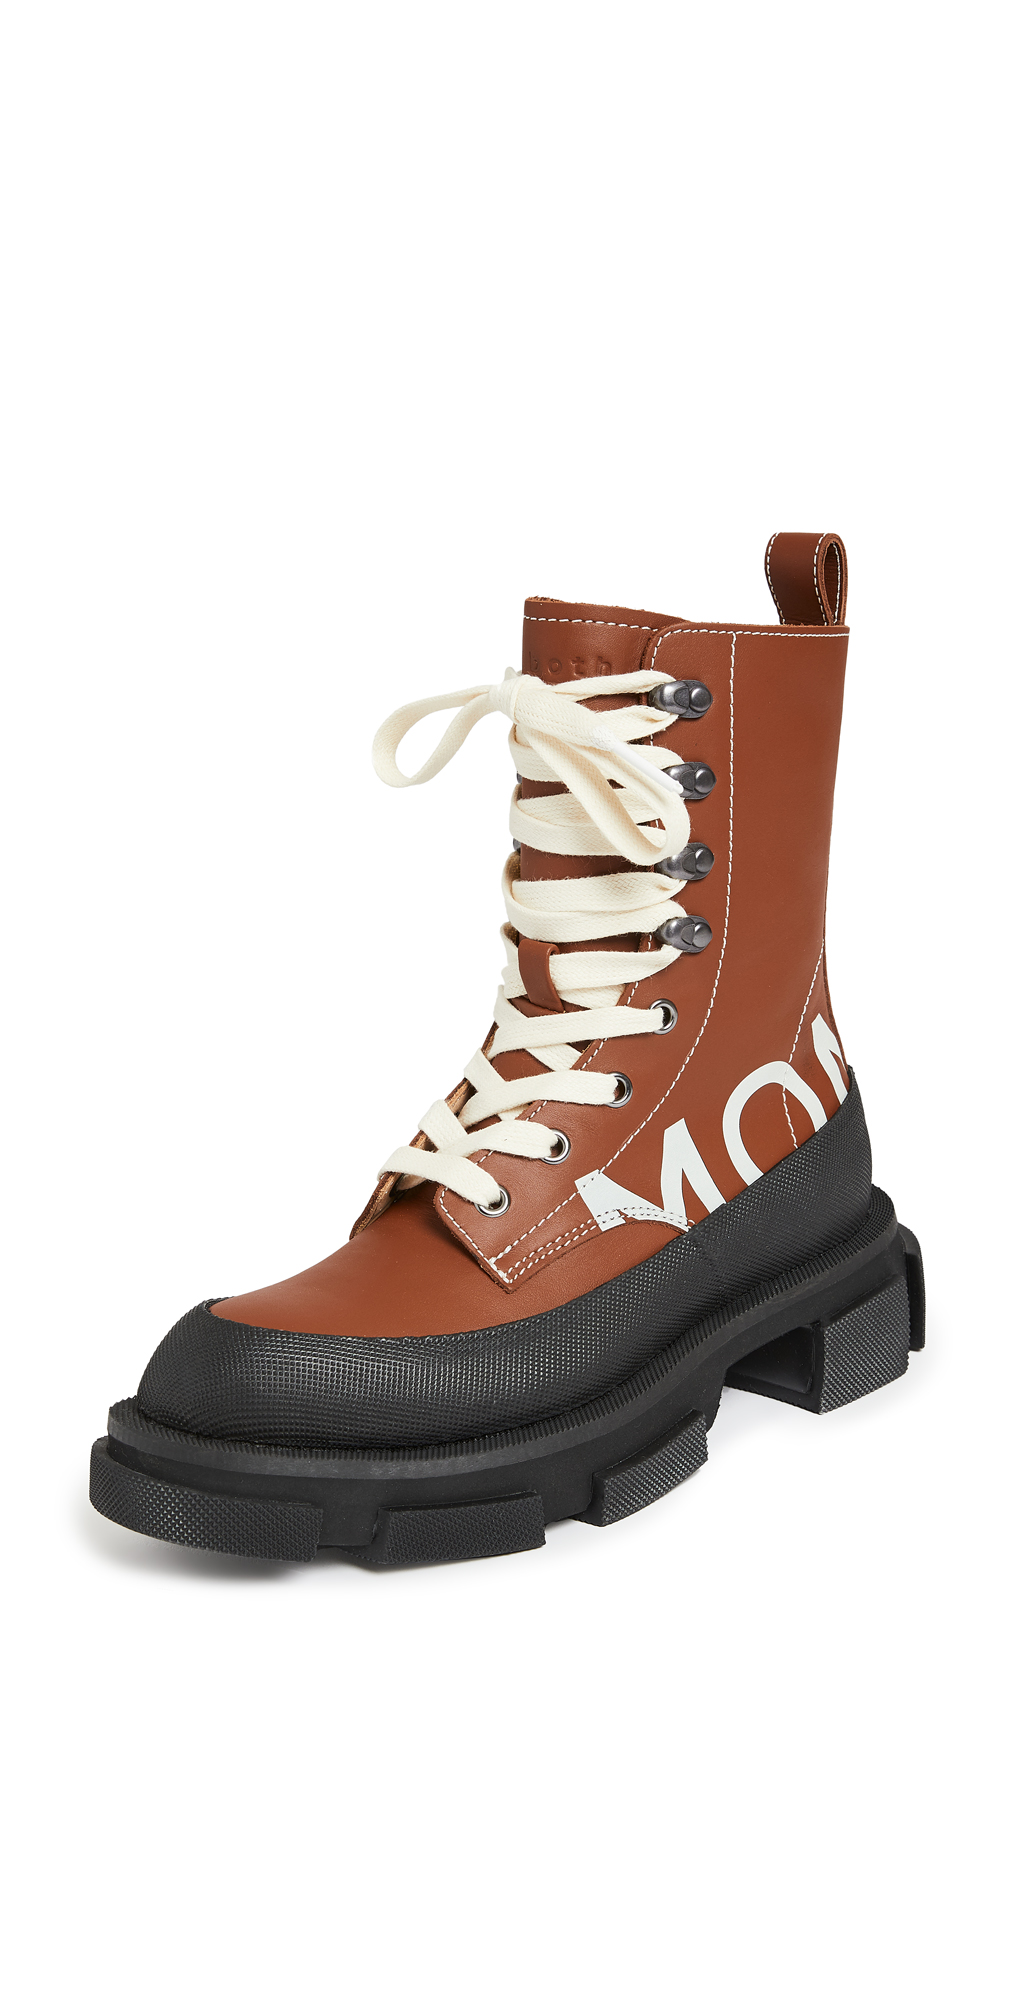 Monse x Both Gao High Boots